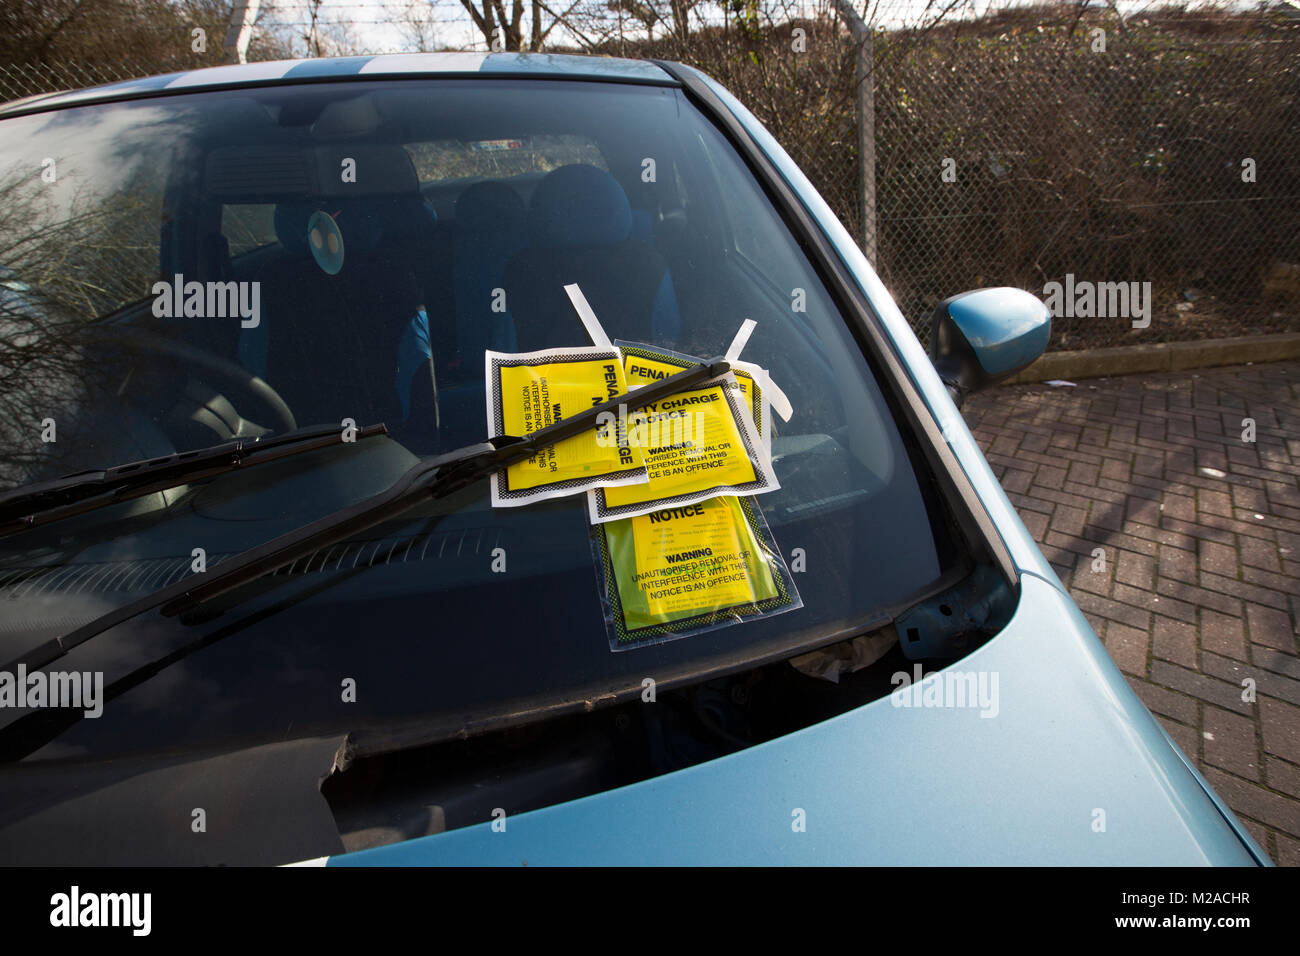 Car with multiple penalty charge notices (PCN's), London, UK - Stock Image